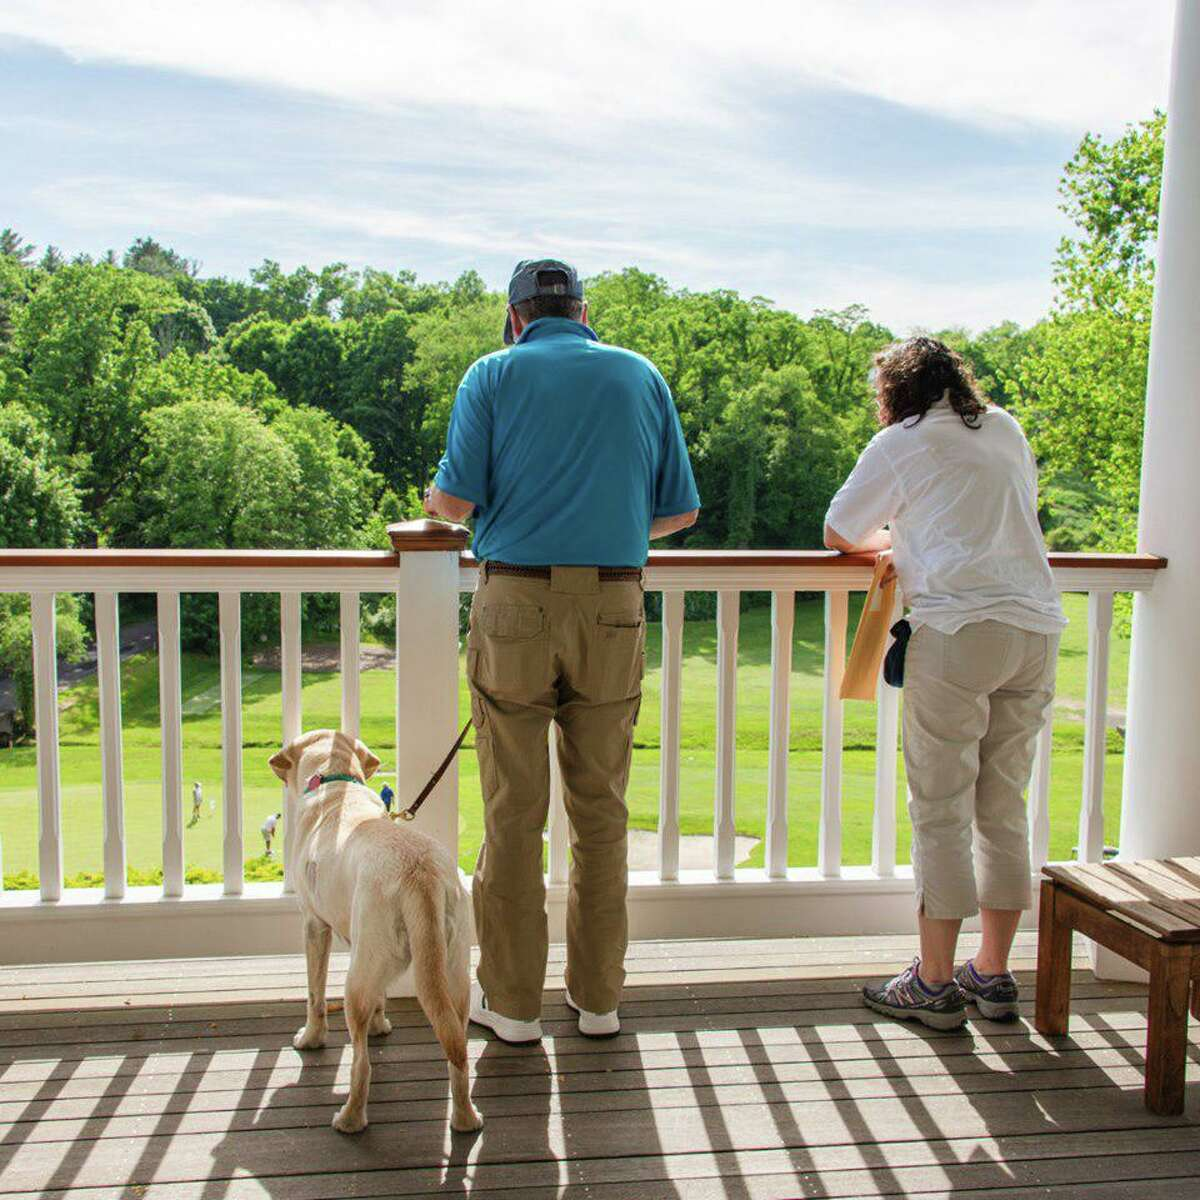 Volunteers Frank Pennacchio and Karin Horowitz along with yellow Labrador retriever guide dog Jiffy watch the golfing action from the porch overlooking the golf course.